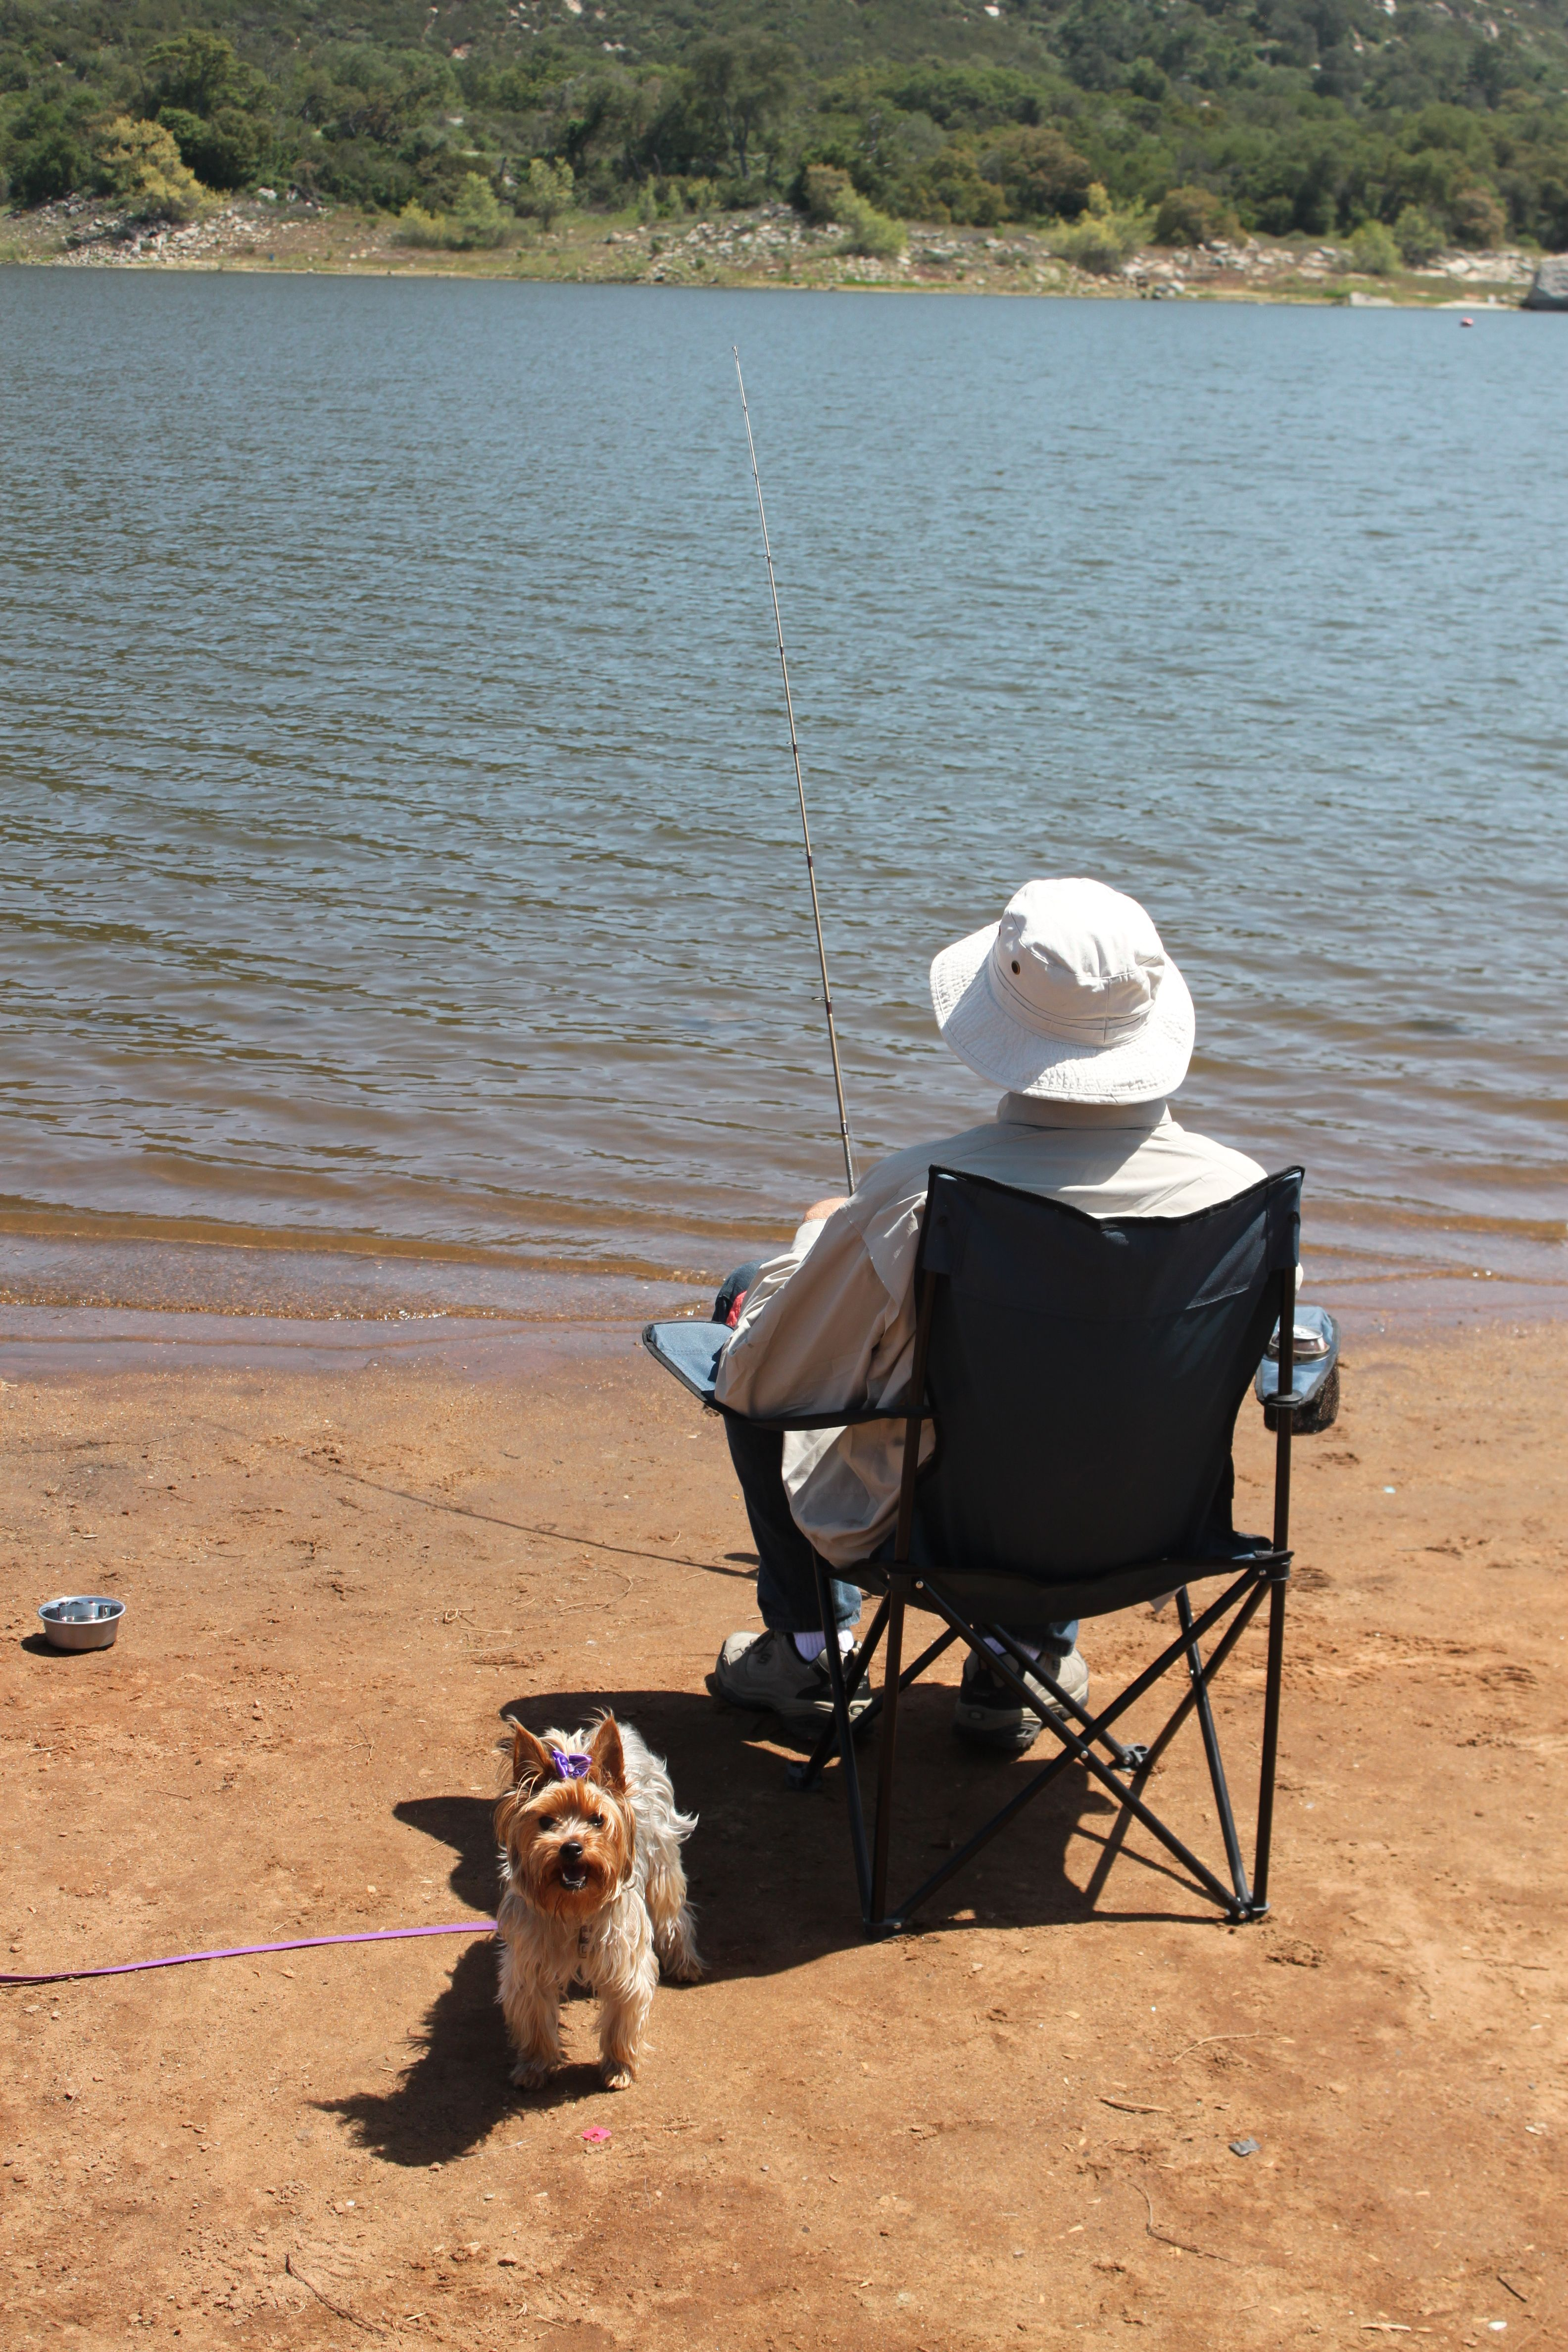 The Gidget goes fishing with that retired guy!!